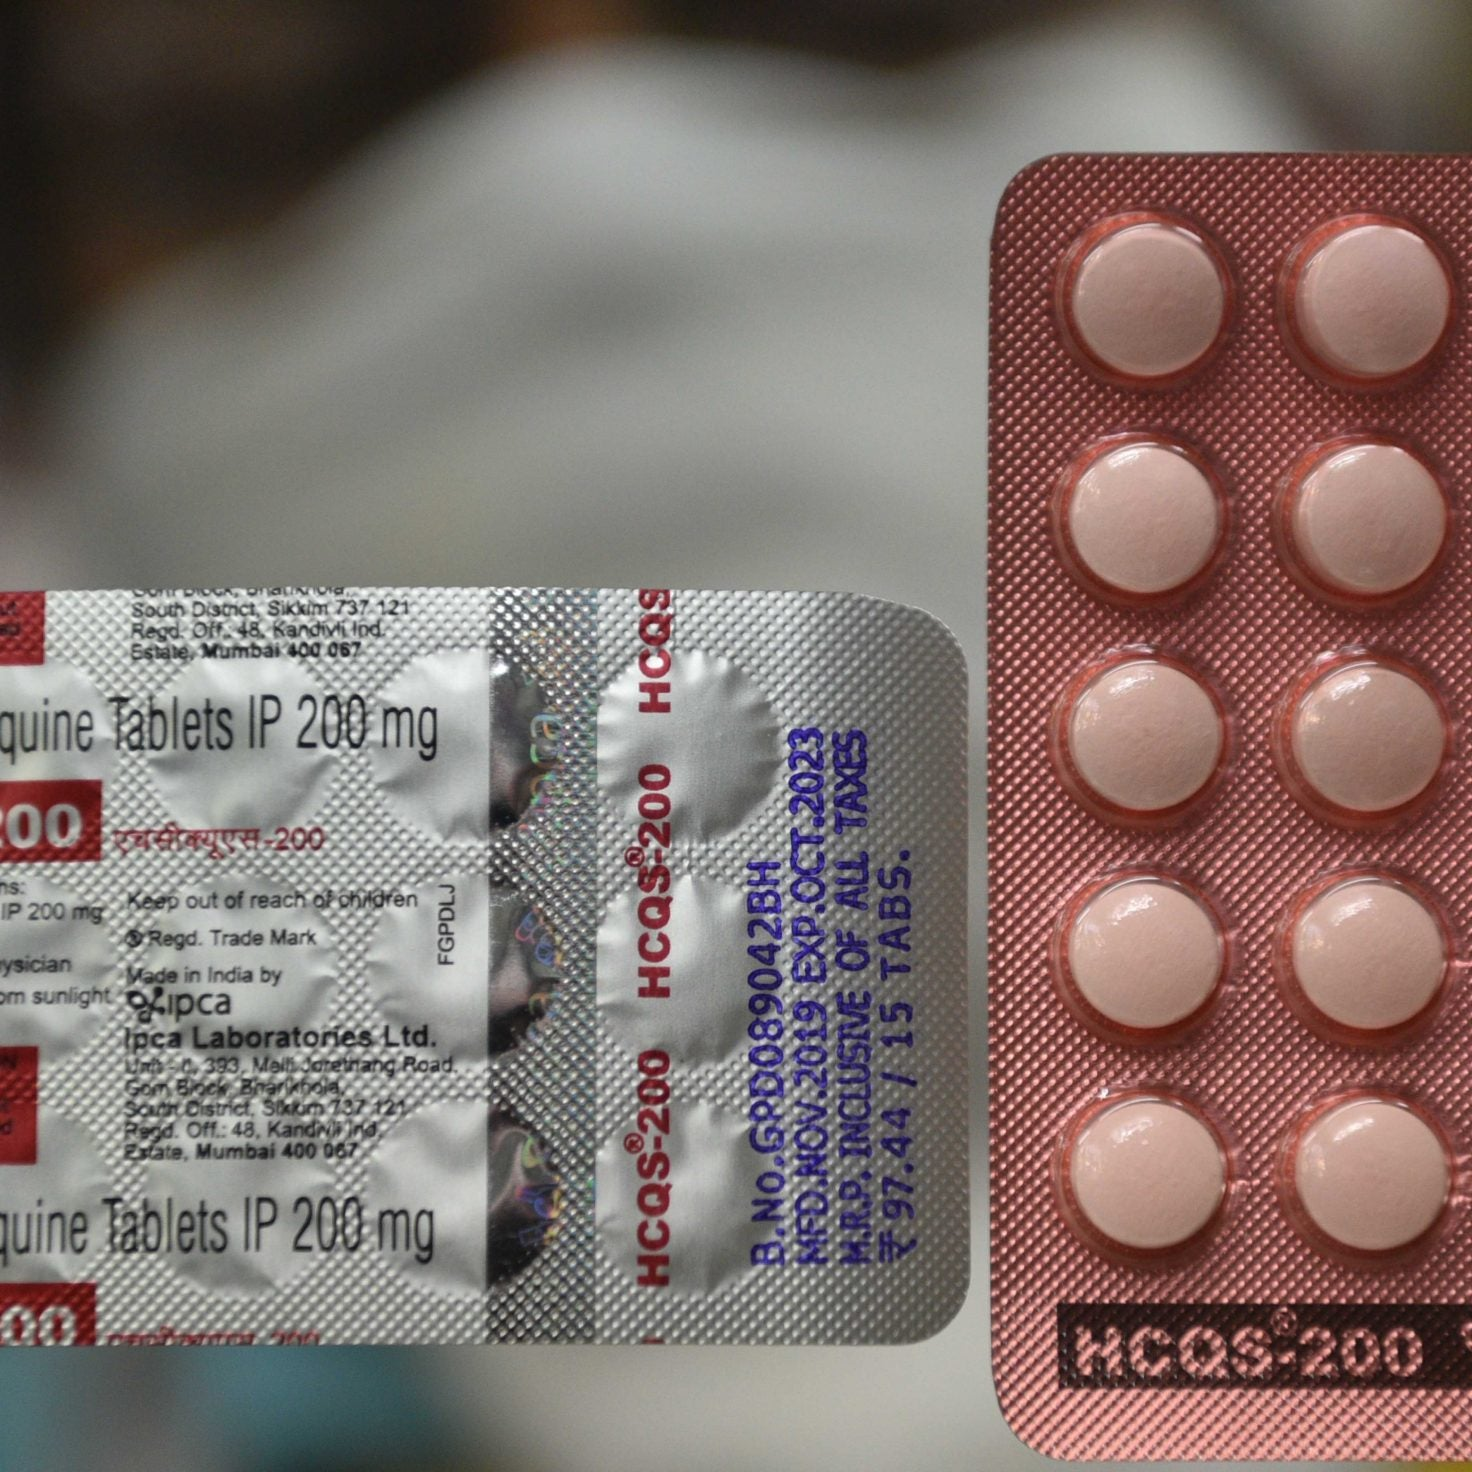 Hydroxychloroquine Doesn't Work For Severely Ill Coronavirus Patients, Preliminary Study Results Show